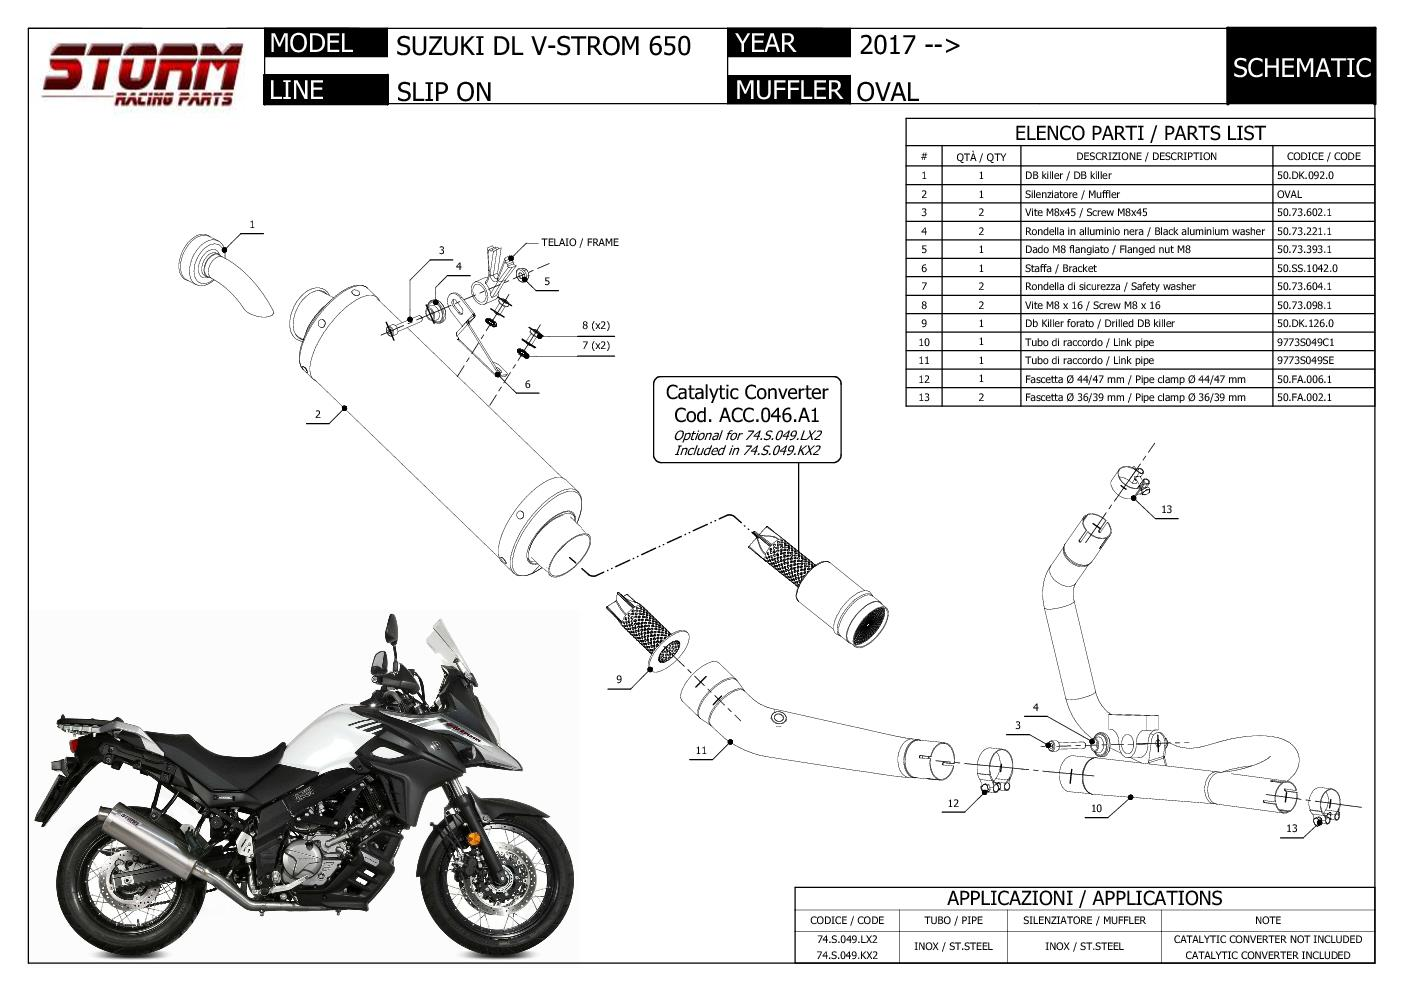 Exhaust Storm by Mivv Muffler Oval Steel for Suzuki Dl V